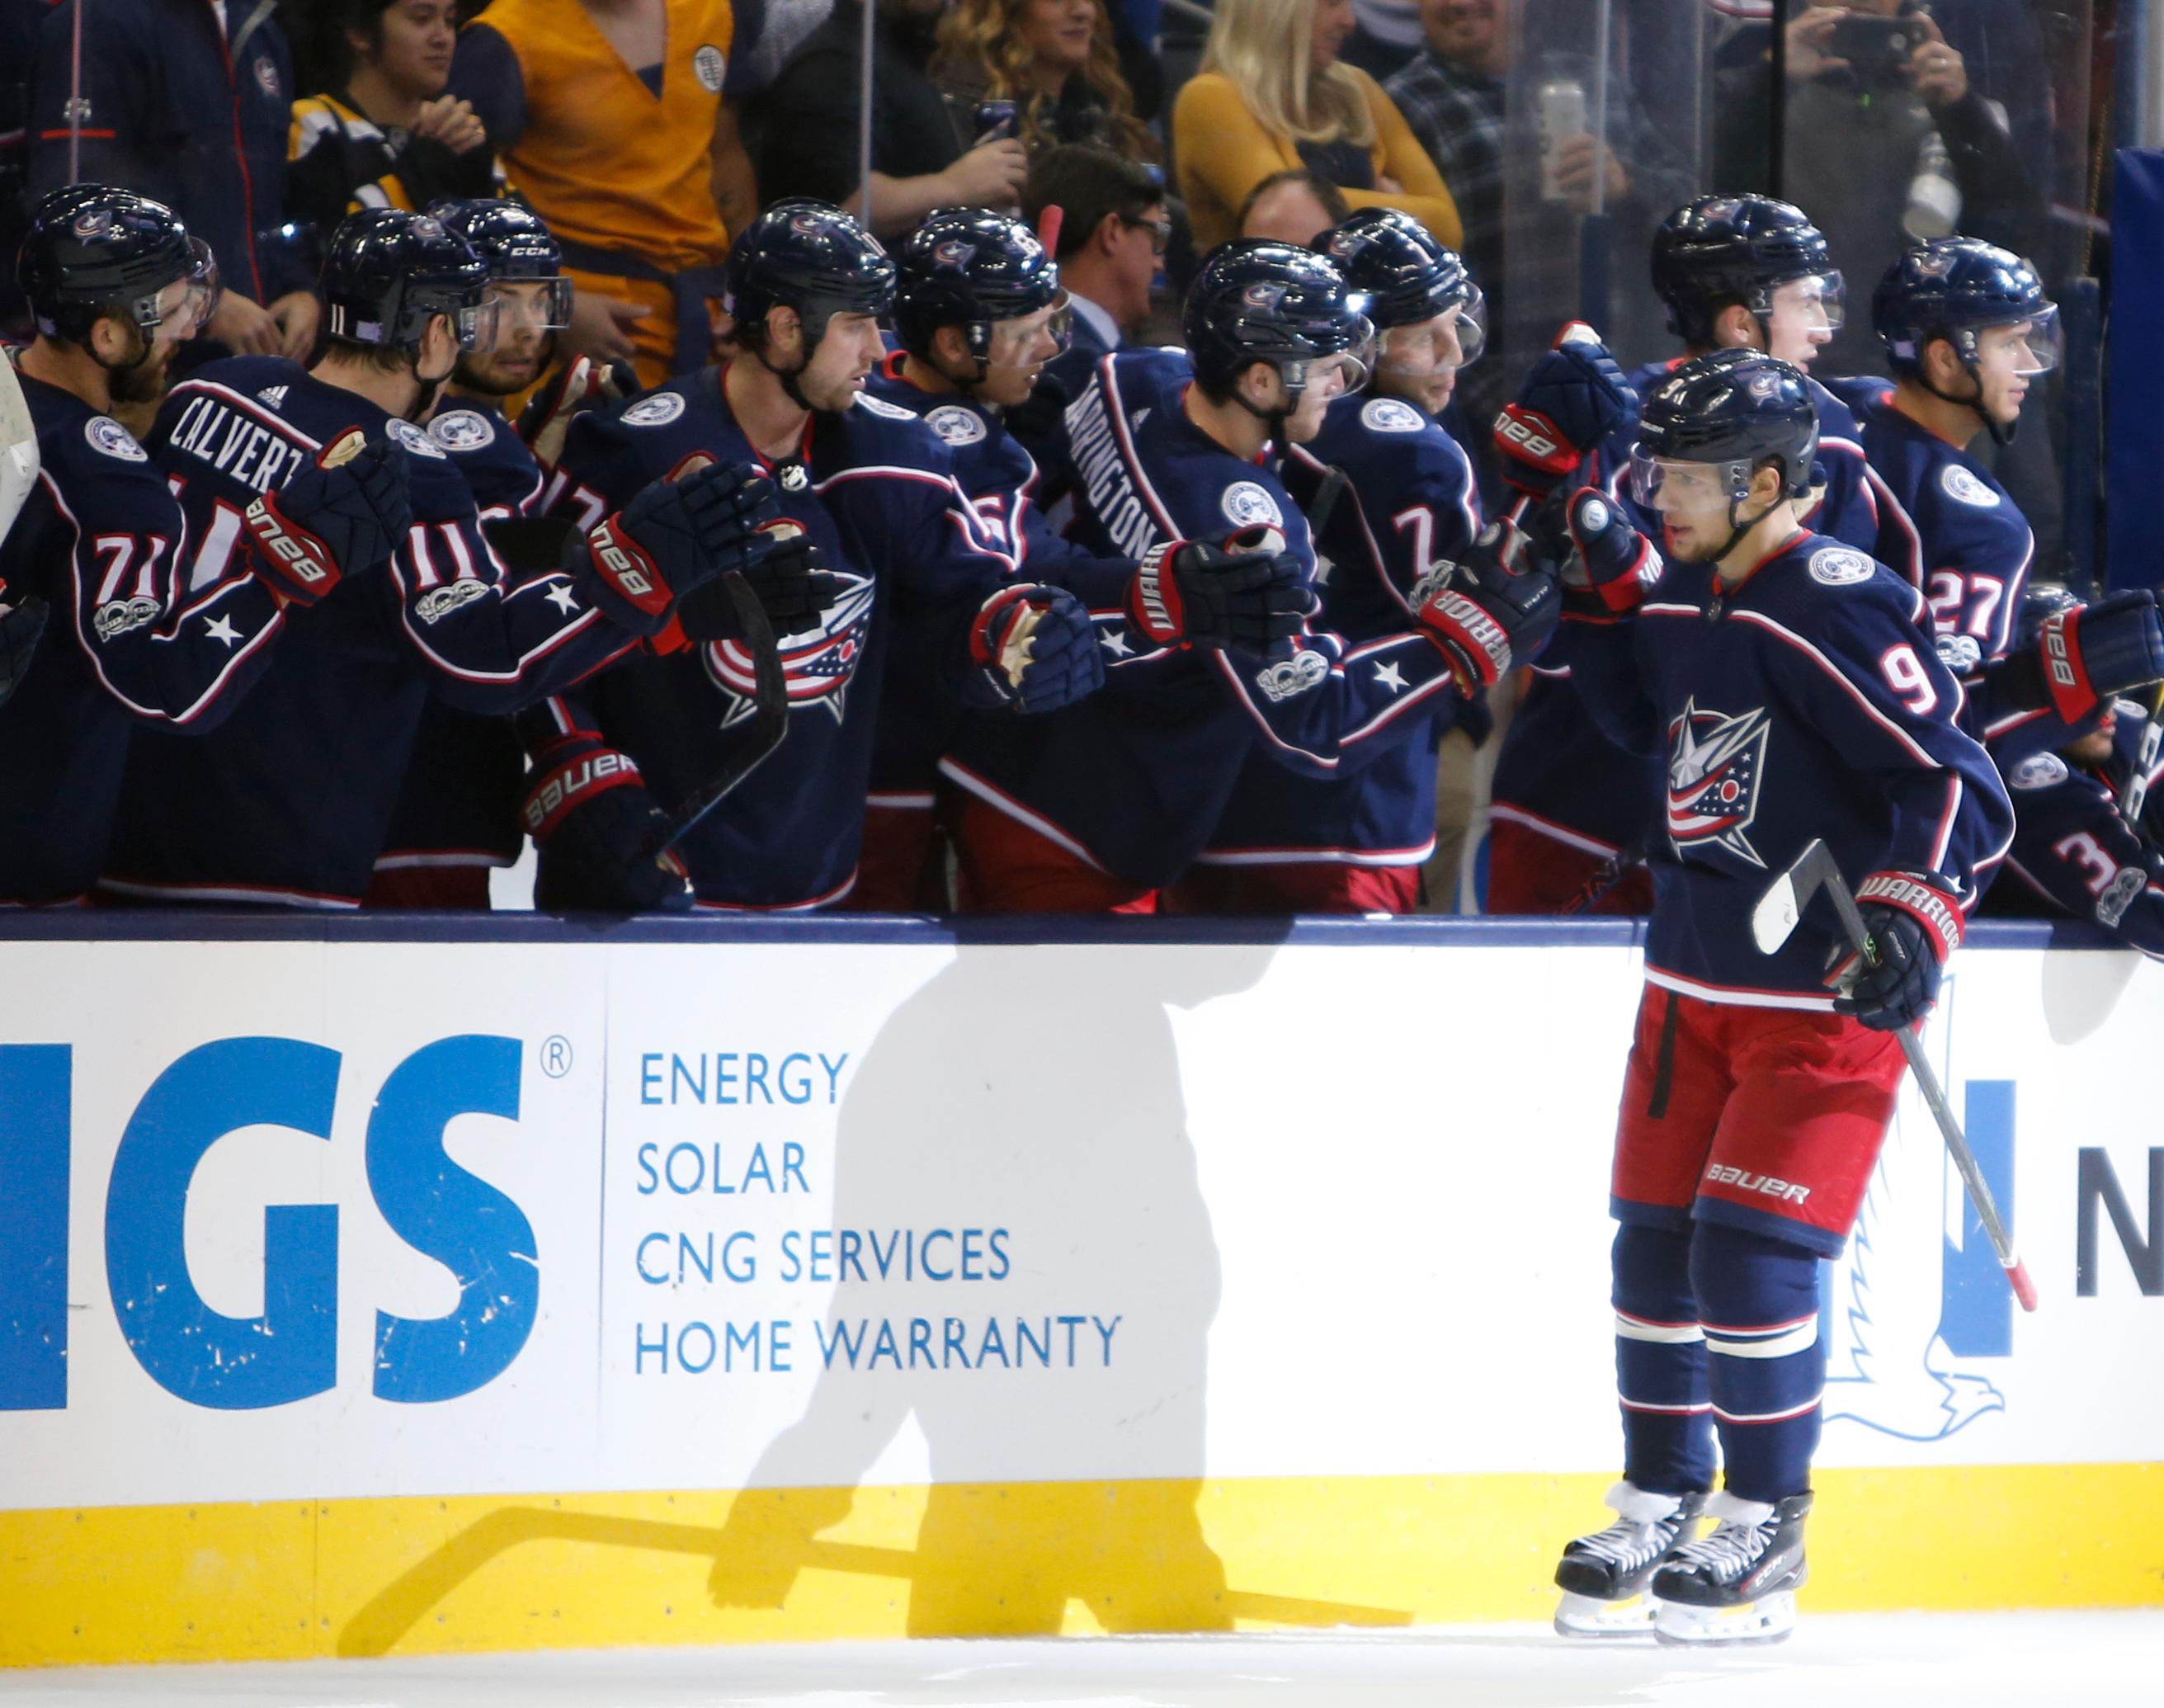 Columbus Blue Jackets' Artemi Panarin, right, of Russia, celebrates his goal against the Boston Bruins during the shootout period of an NHL hockey game Monday, Oct. 30, 2017, in Columbus, Ohio. The Blue Jackets beat the Bruins 4-3 in a shootout. (AP Photo/Jay LaPrete)